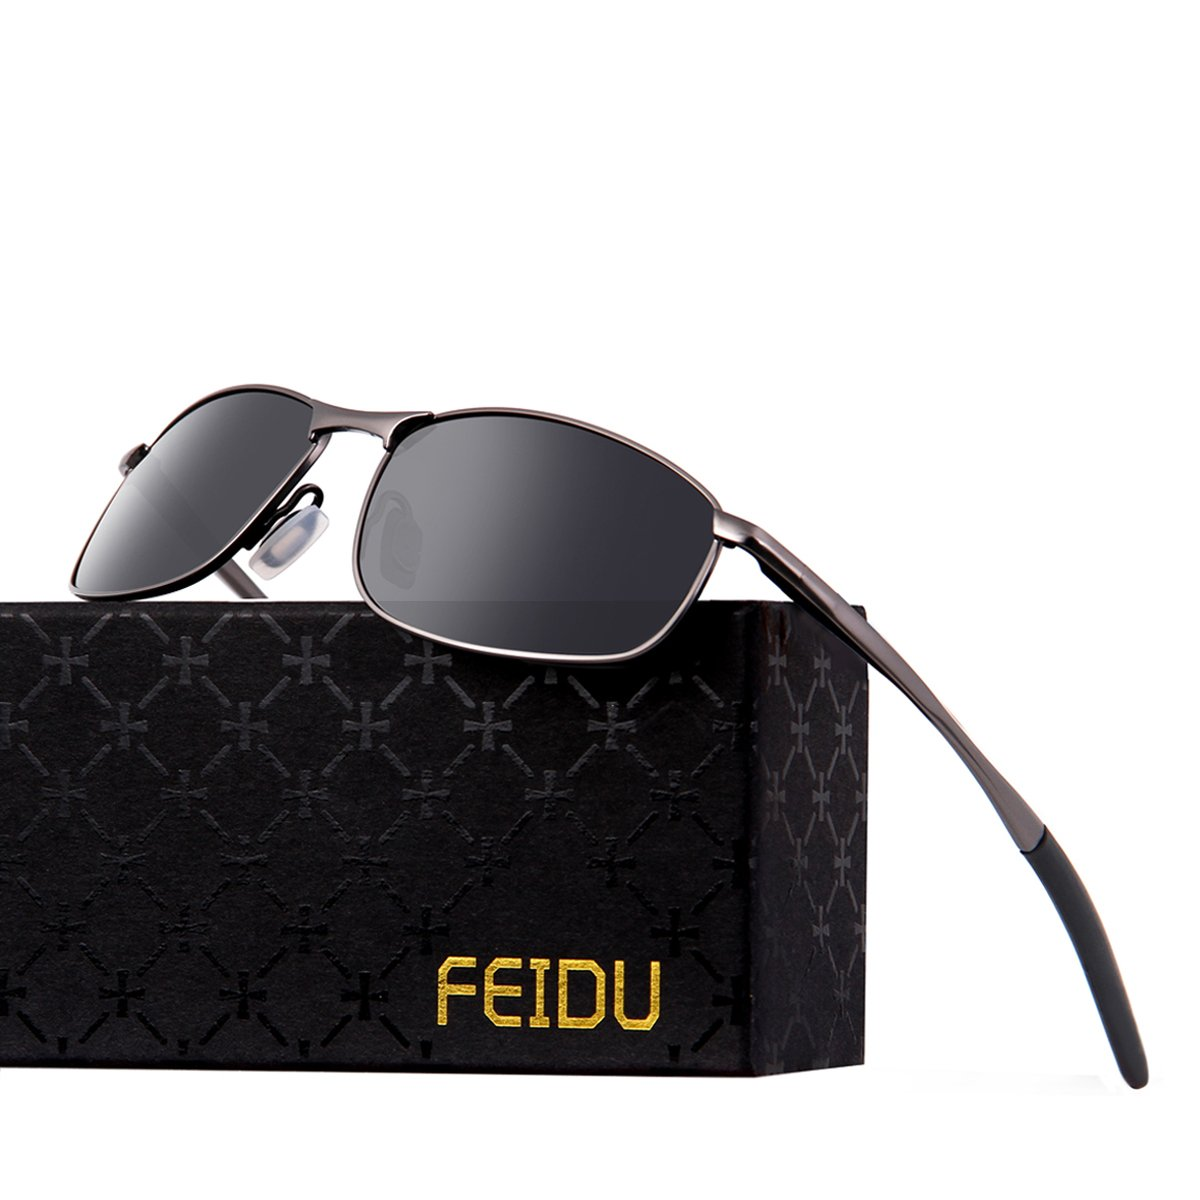 FEIDU Polarized Sport Mens Sunglasses HD Lens Metal Frame Driving Shades FD 9005 (A Black/Gun, 2.24)